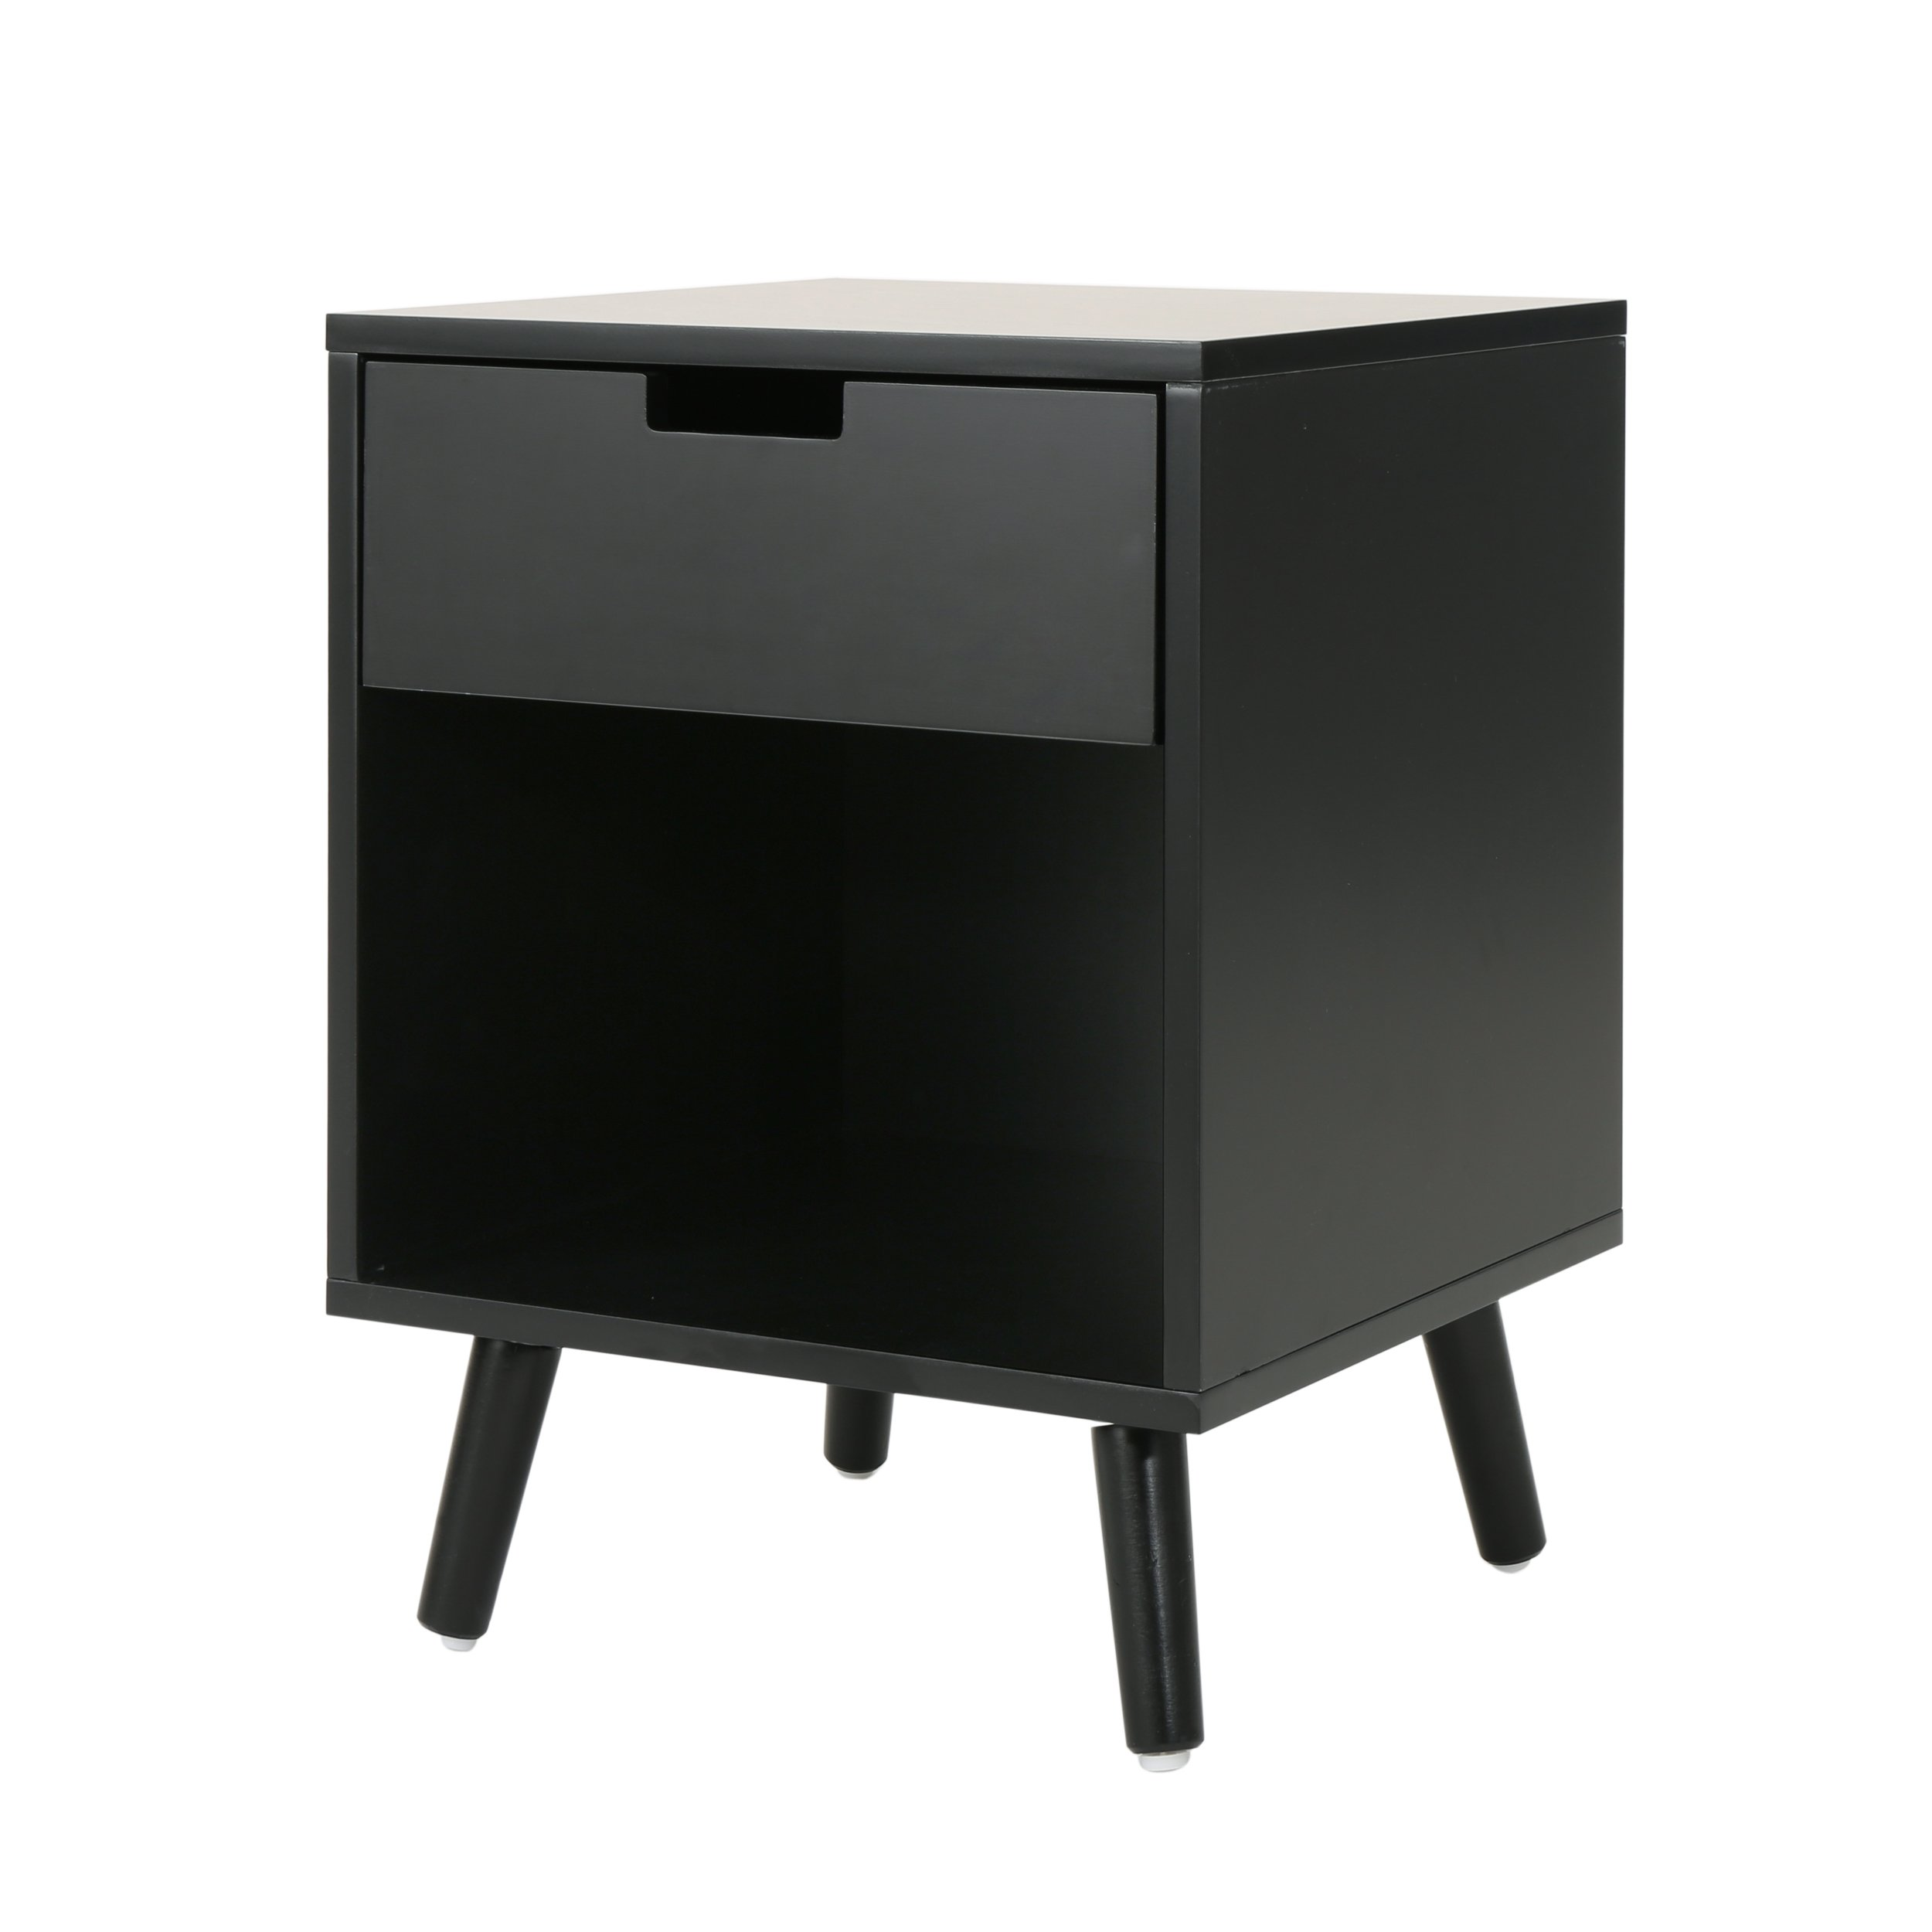 Christopher Knight Home Tammy Modern Wood Accent Side Table | in Black by Christopher Knight Home